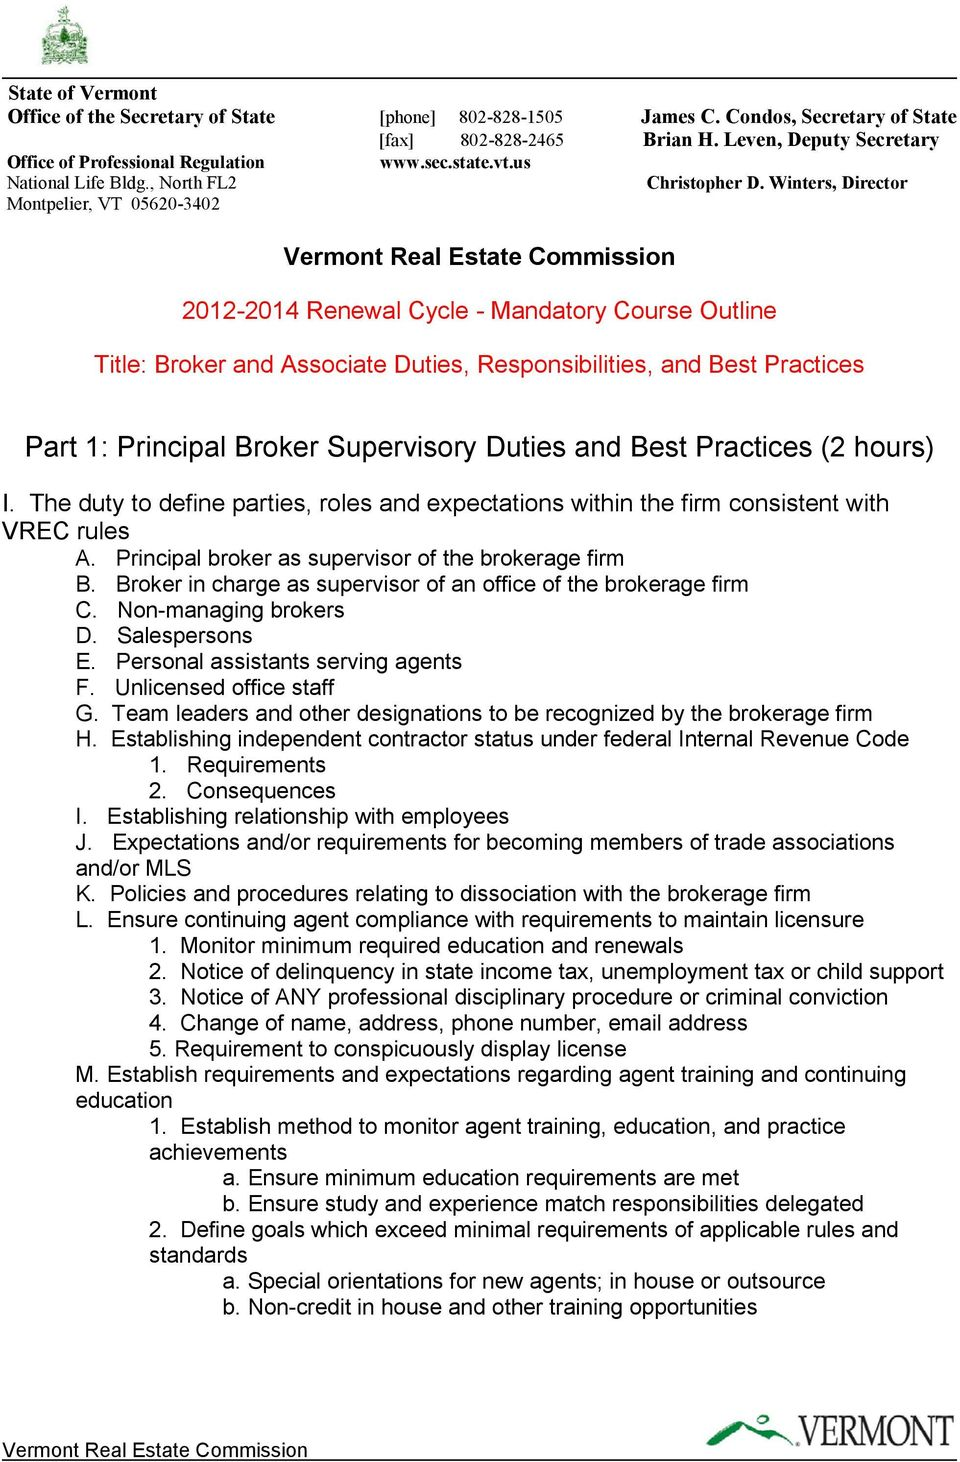 Winters, Director Montpelier, VT 05620-3402 2012-2014 Renewal Cycle - Mandatory Course Outline Title: Broker and Associate Duties, Responsibilities, and Best Practices Part 1: Principal Broker